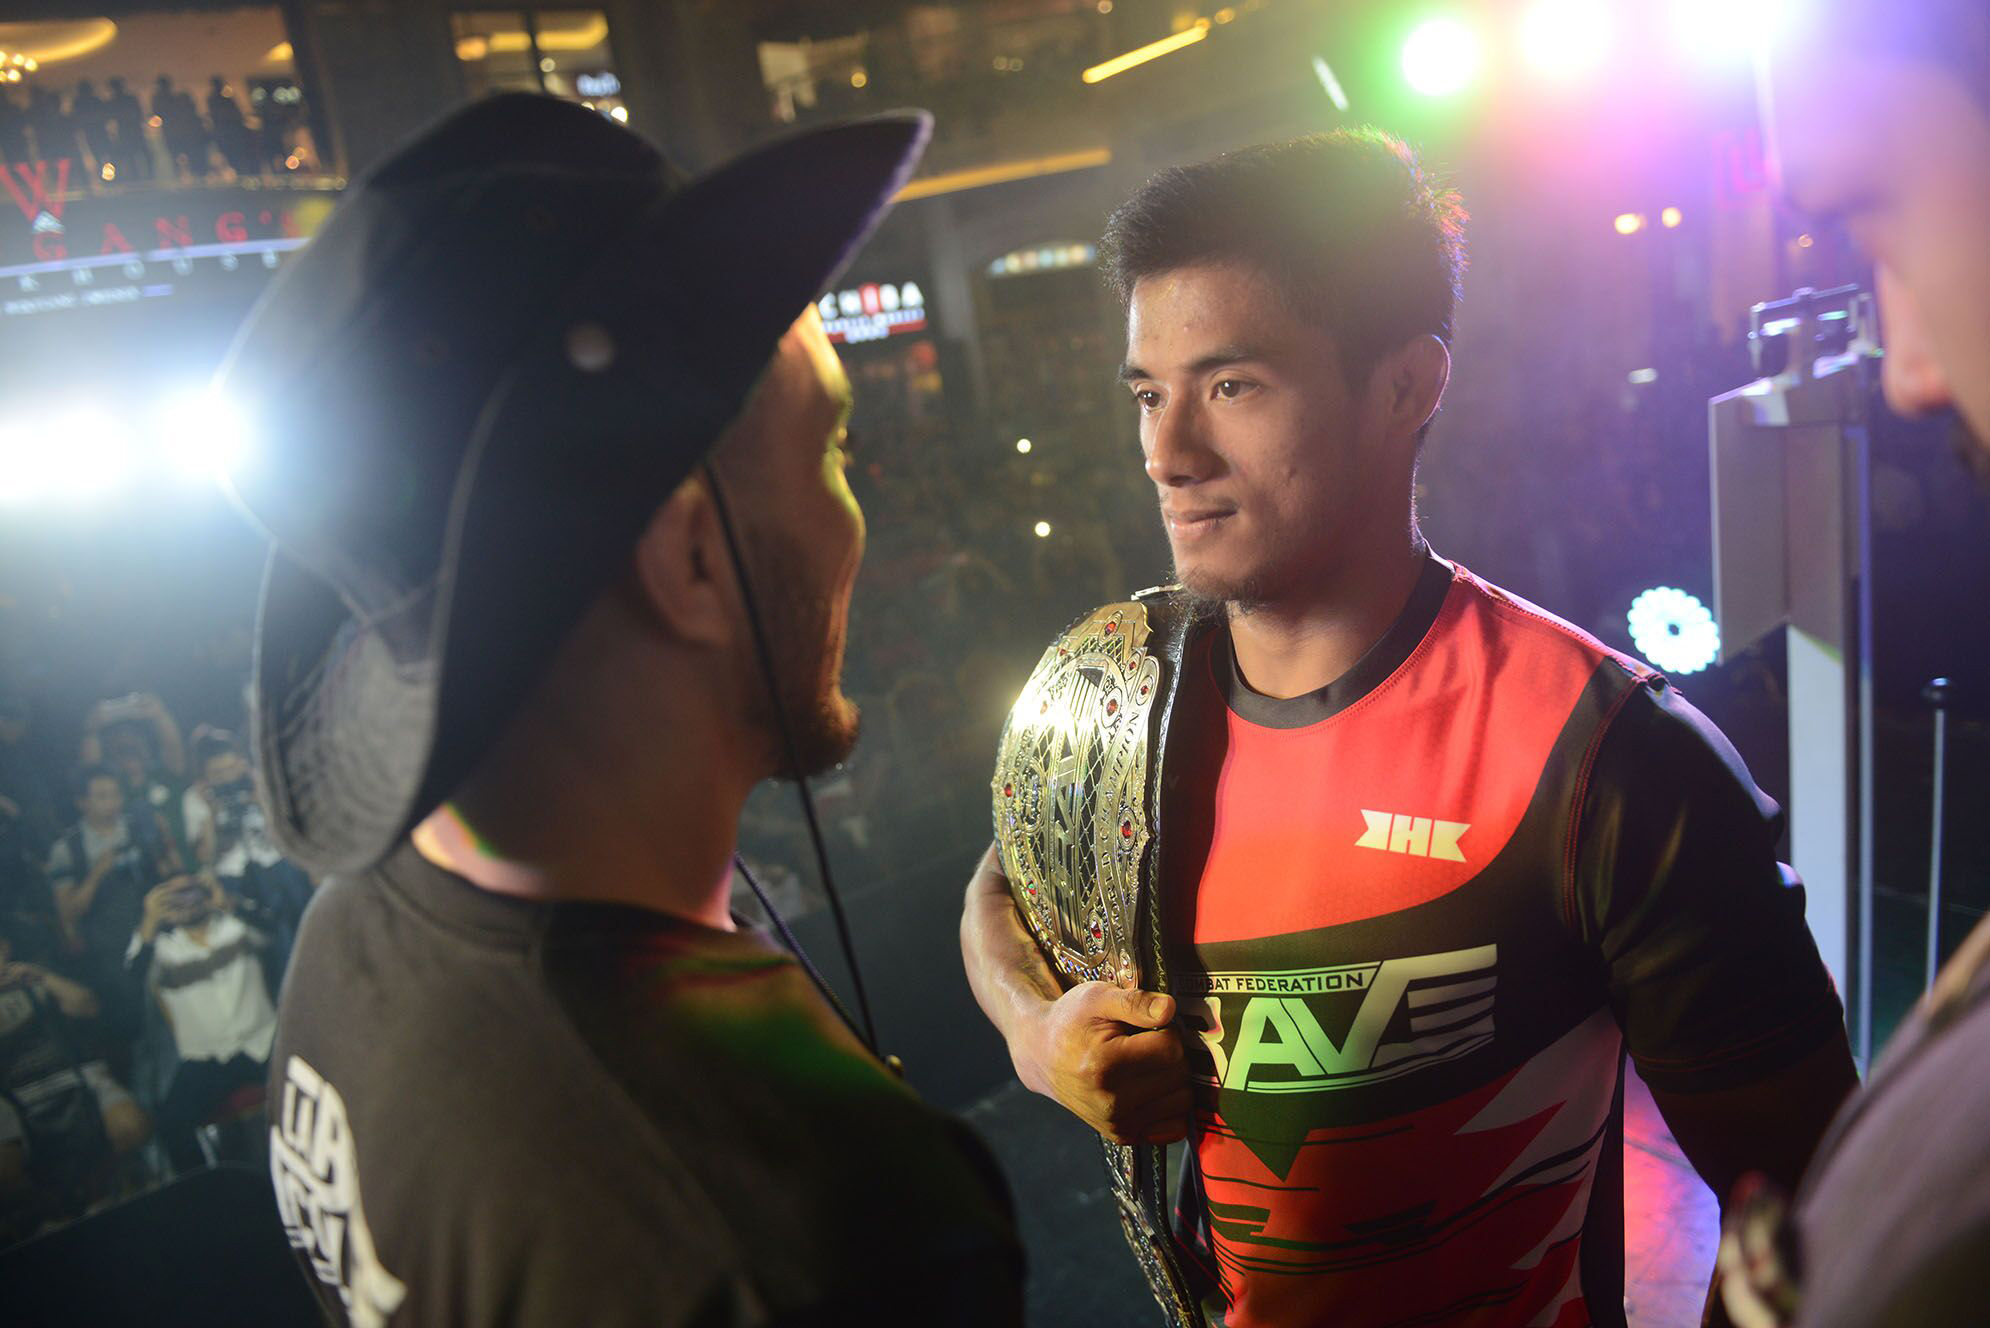 Intense staredowns steal show at Brave 22 weigh-ins